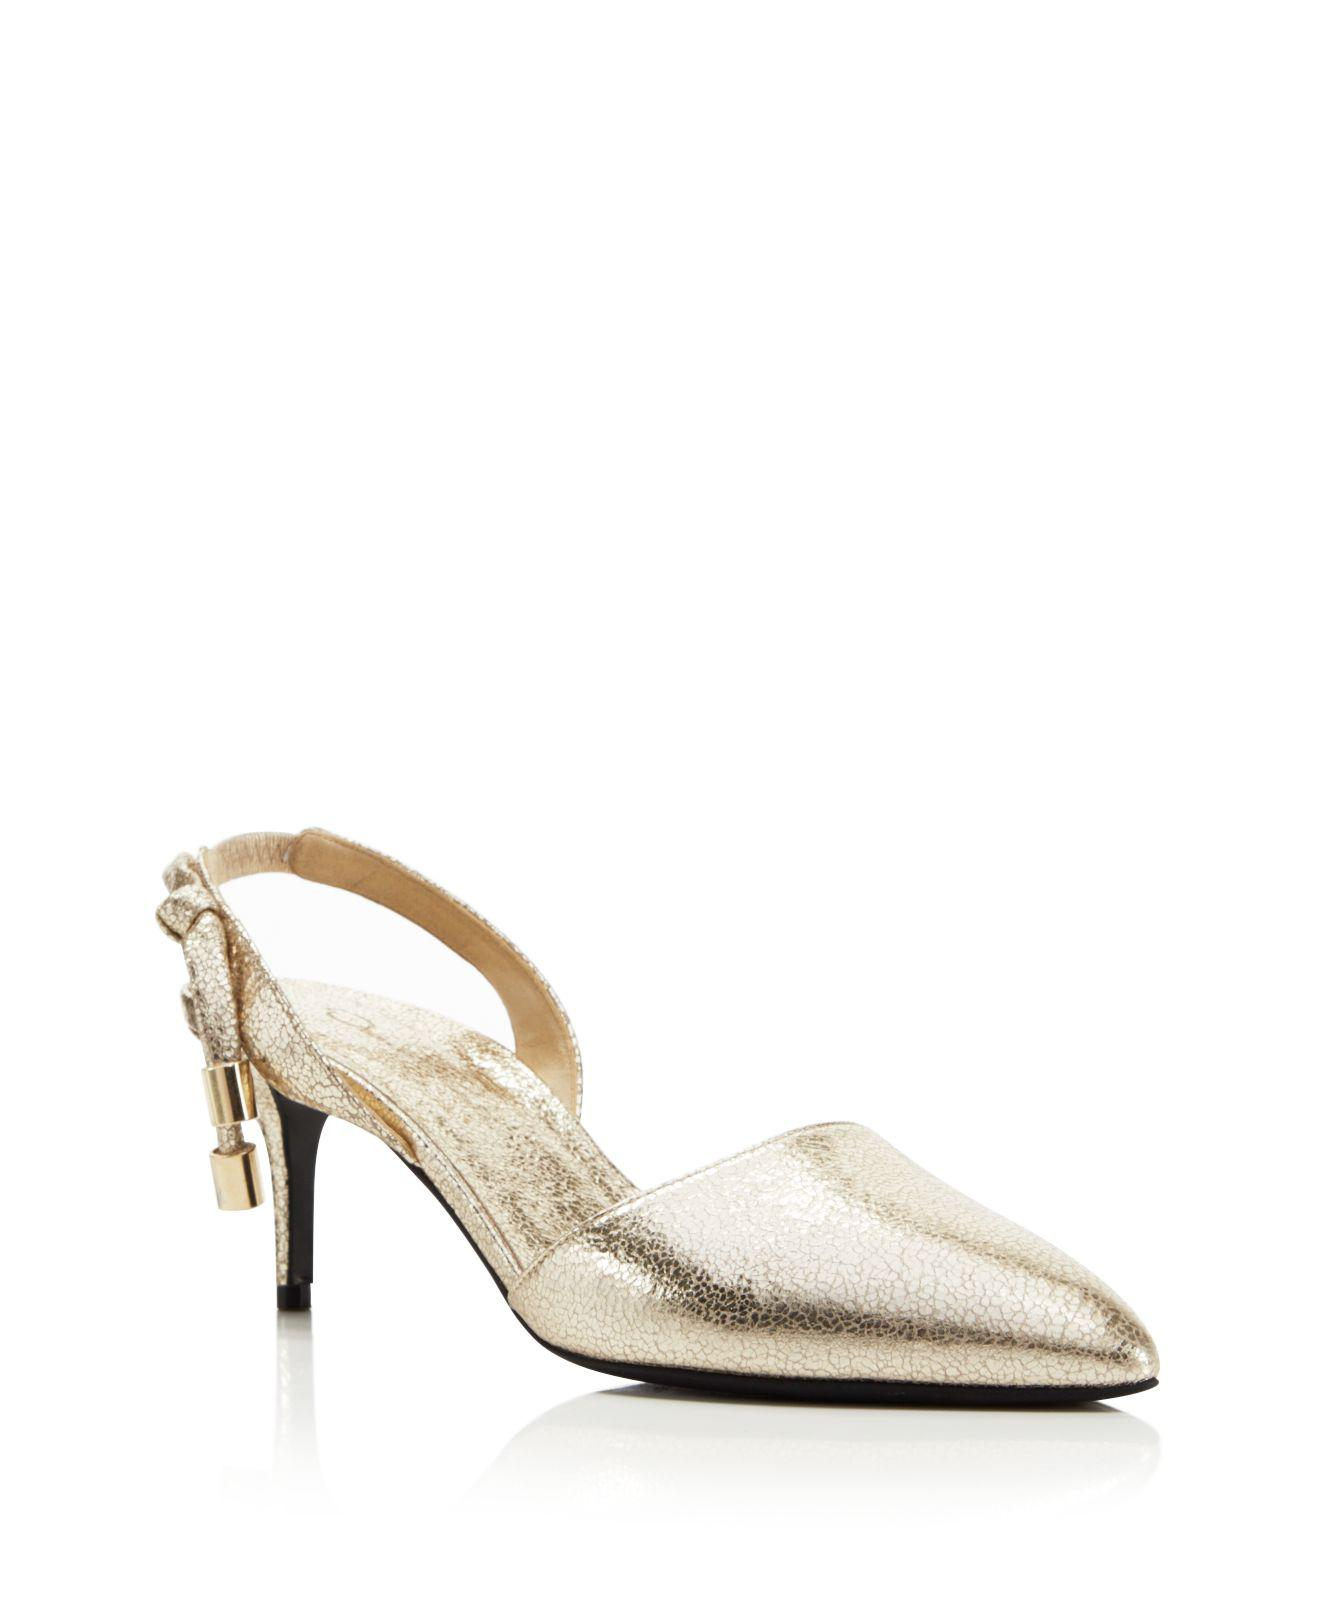 Oscar de la Renta Embossed Leather Slingback Pumps from china online clearance find great Cheapest cheap price 2abwMJet9